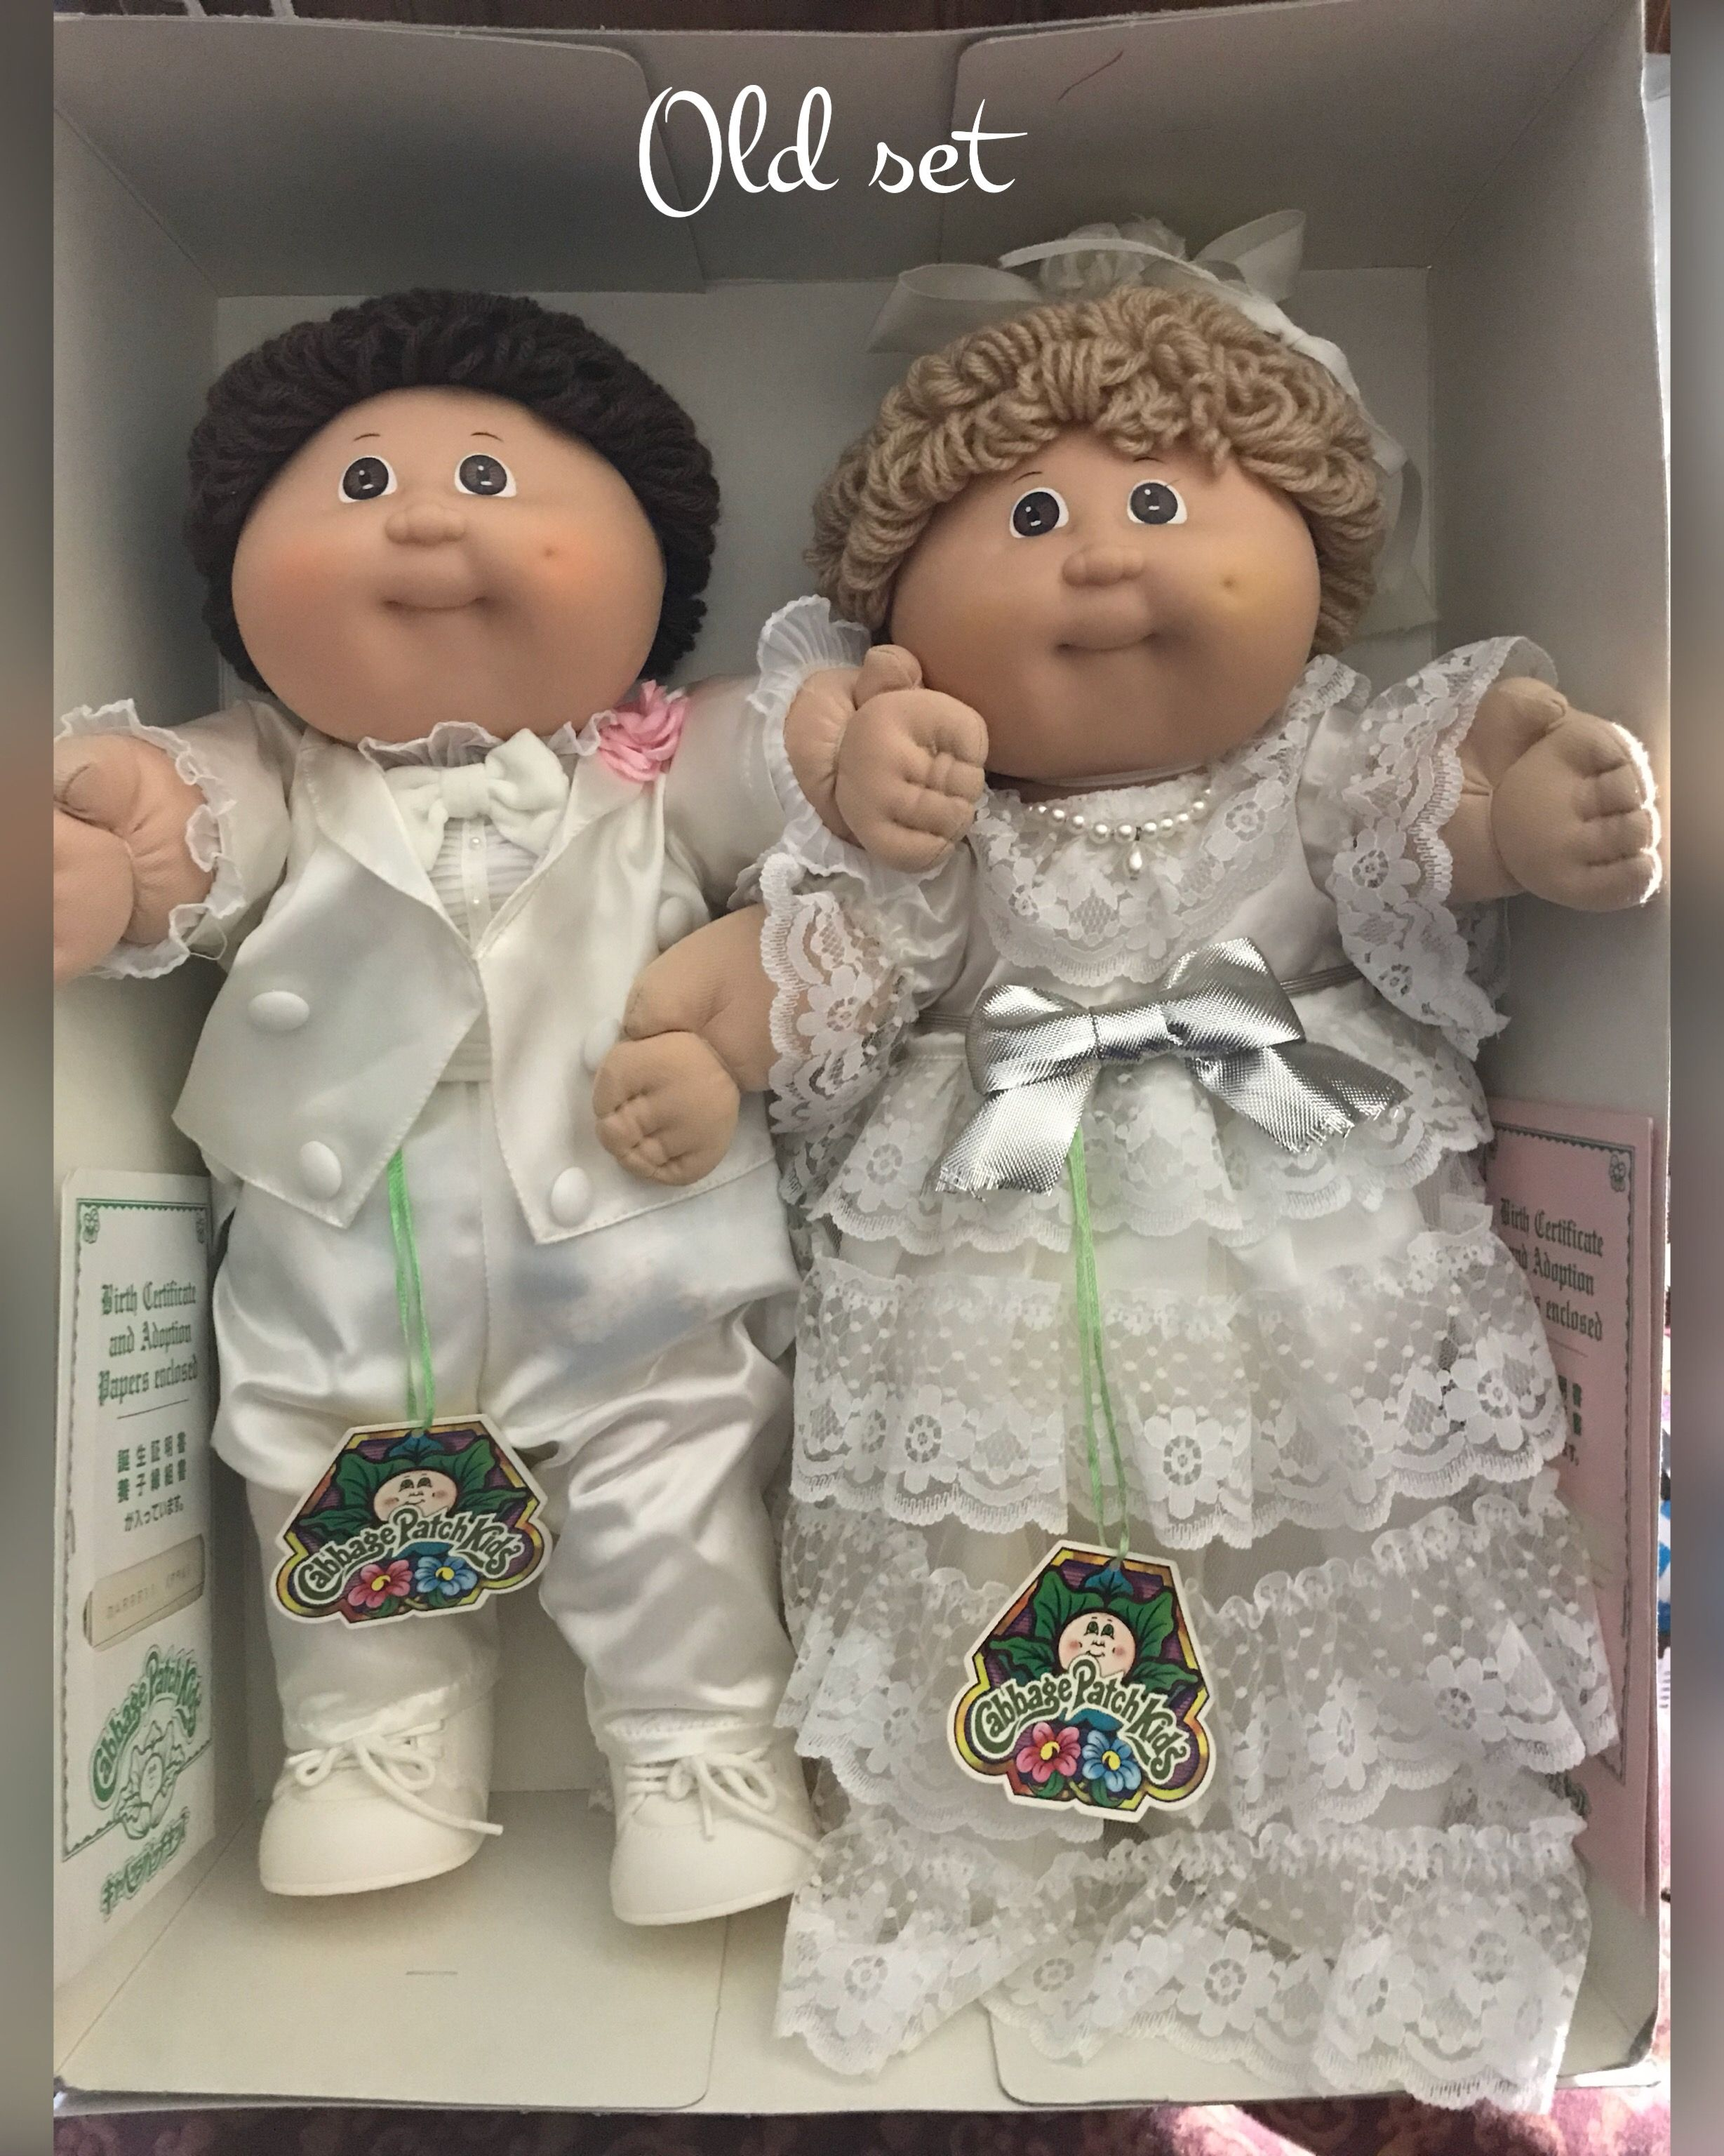 Cabbage patch dolls | 200+ ideas on Pinterest in 2020 | cabbage patch dolls,  cabbage patch, cabbage patch kids